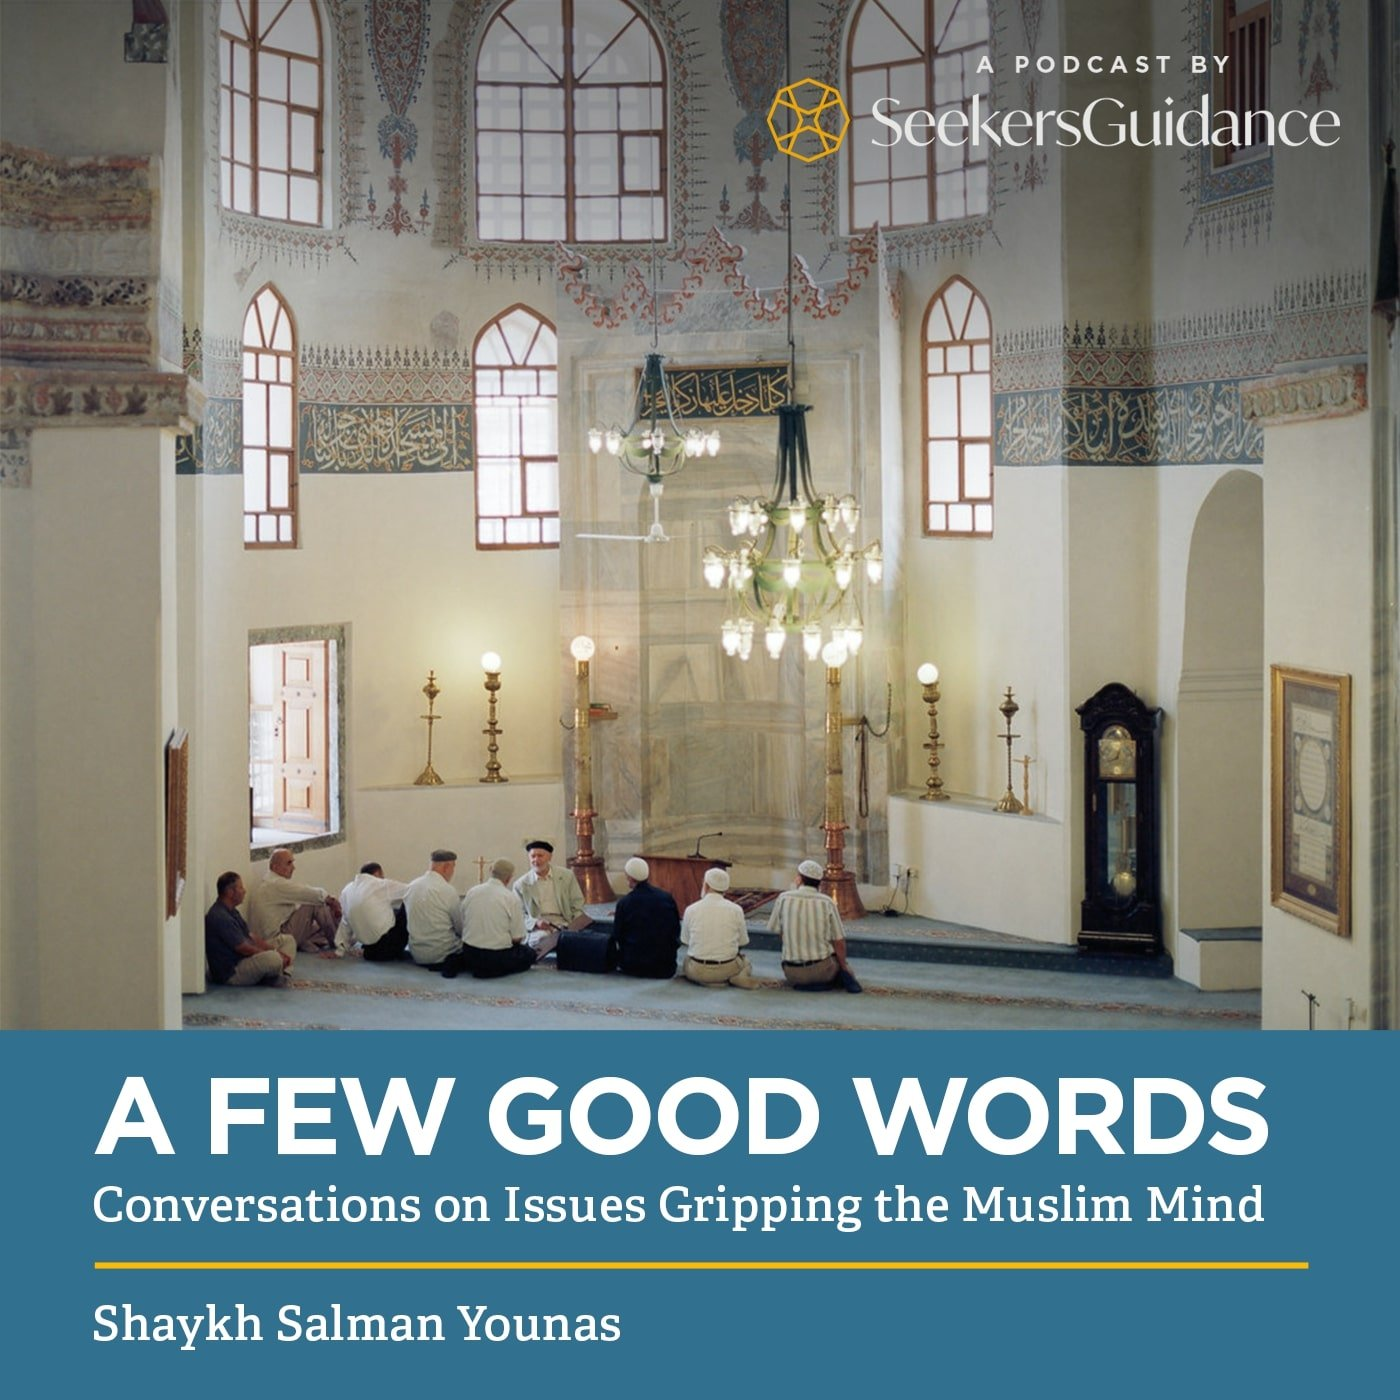 A Few Good Words: Conversations on Issues Gripping the Muslim Mind